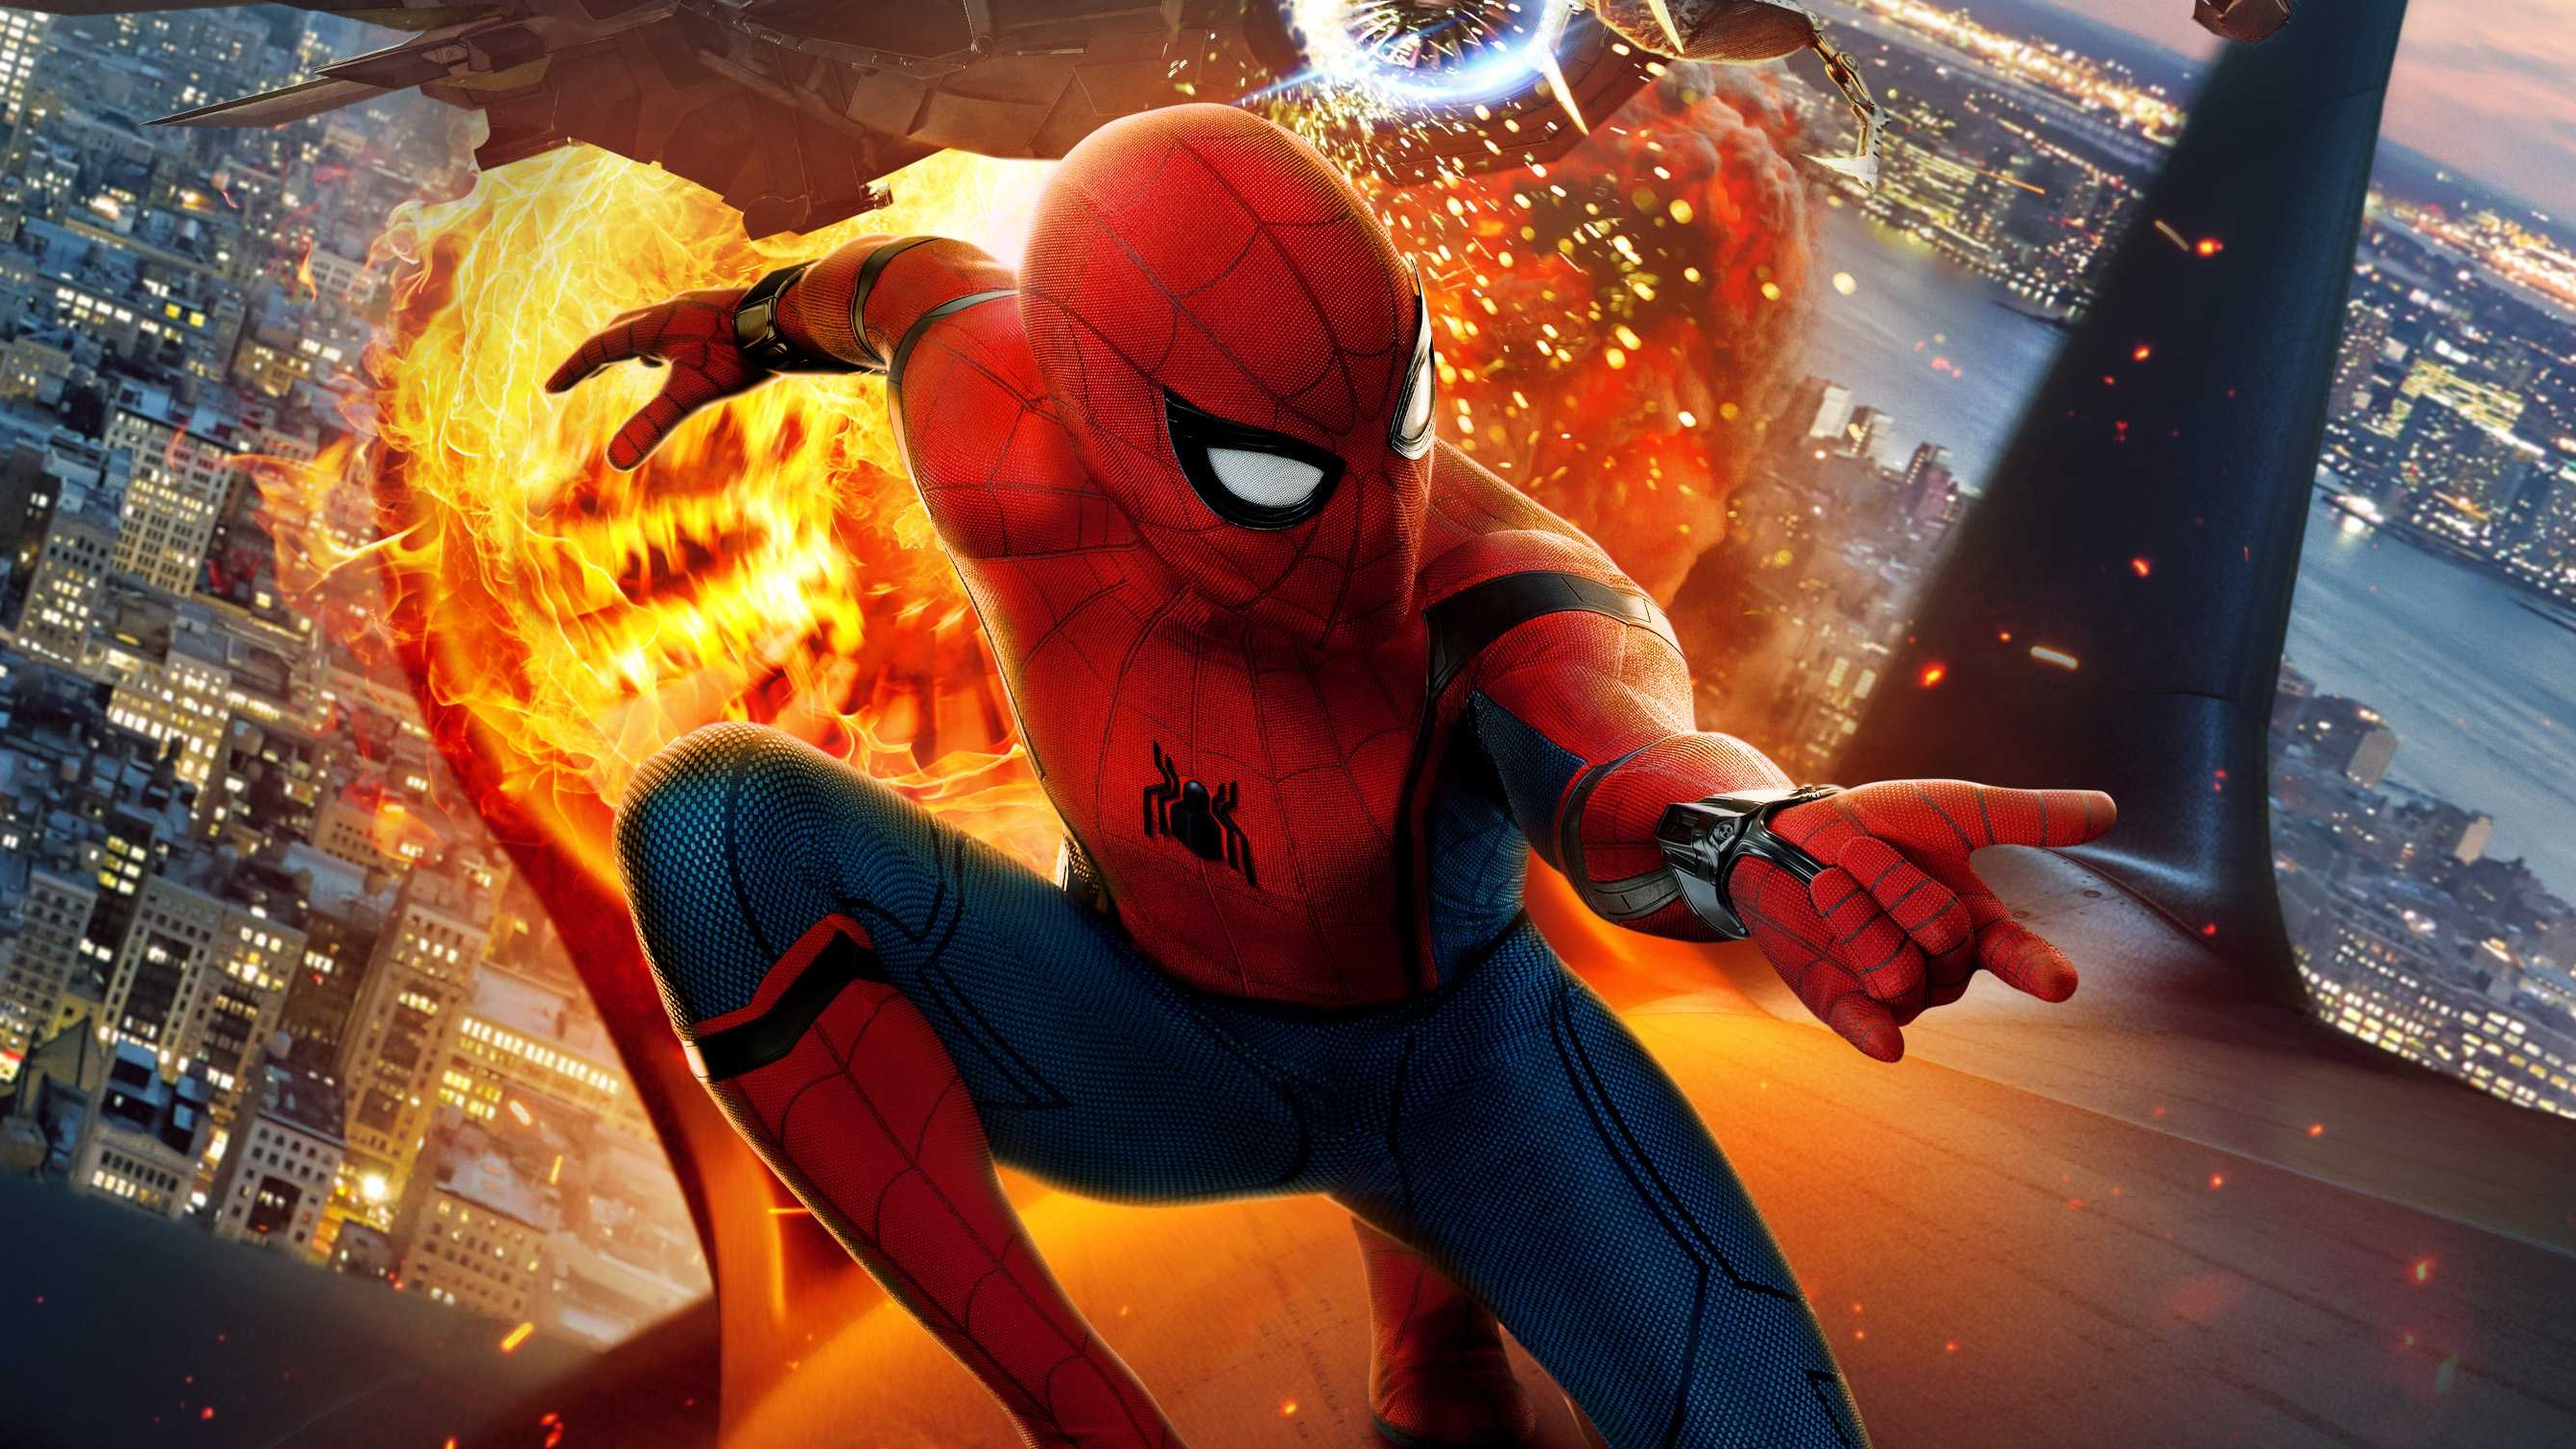 spider-man-wallpaper-full-hd-images-of-androids-homecoming-vulture-iron.jpg